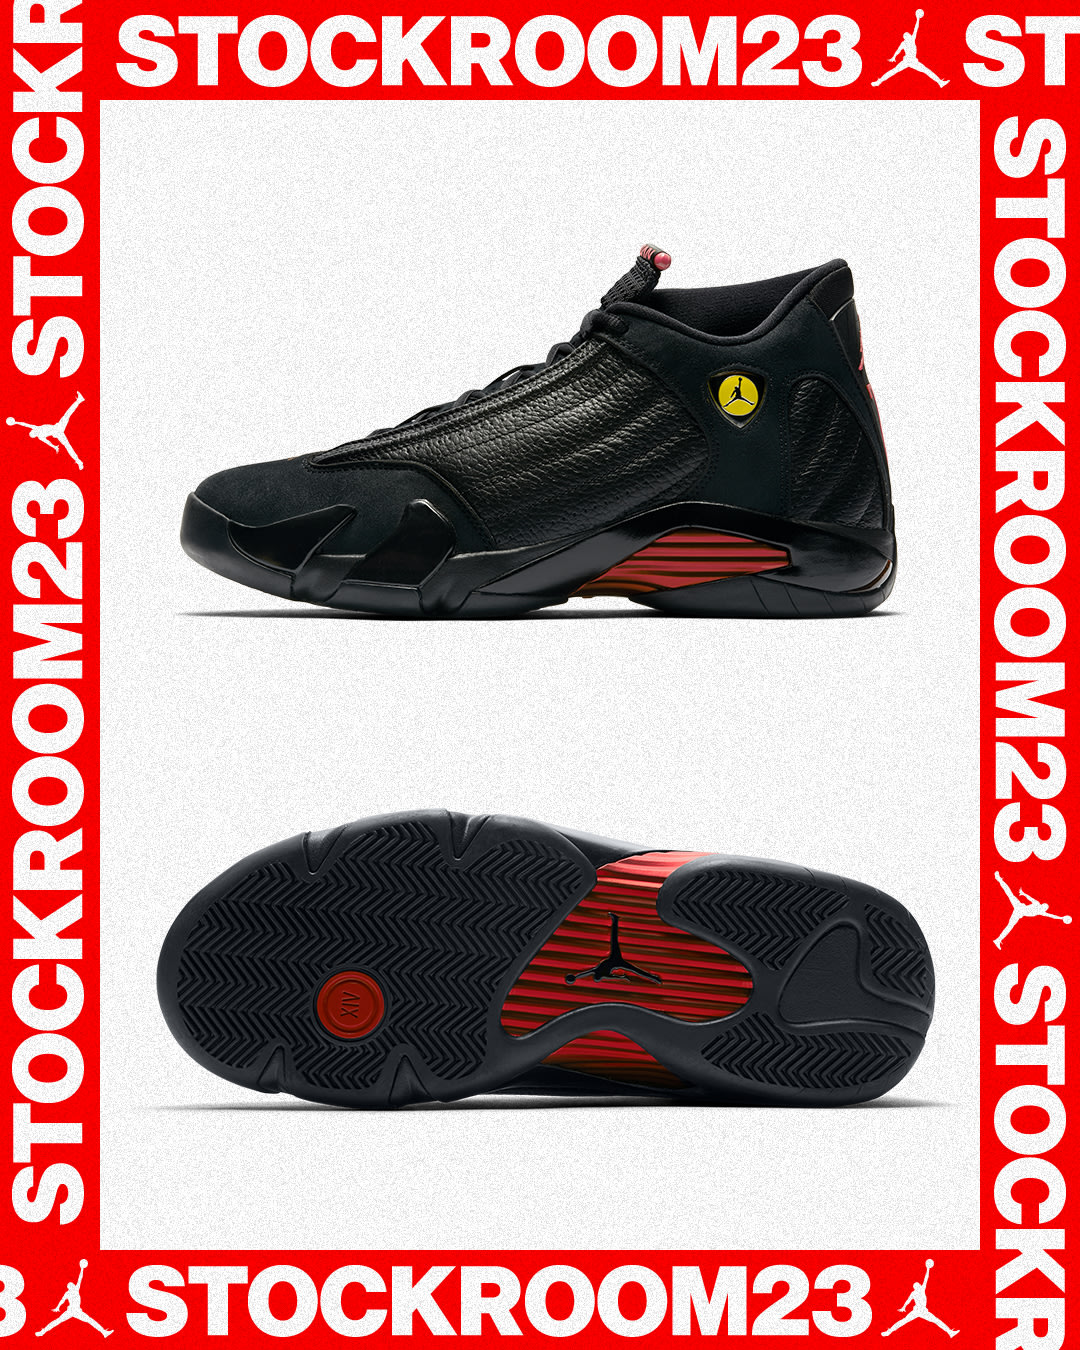 House of Hoops Stockroom23 Air Jordan 14 'Last Shot' Early Release